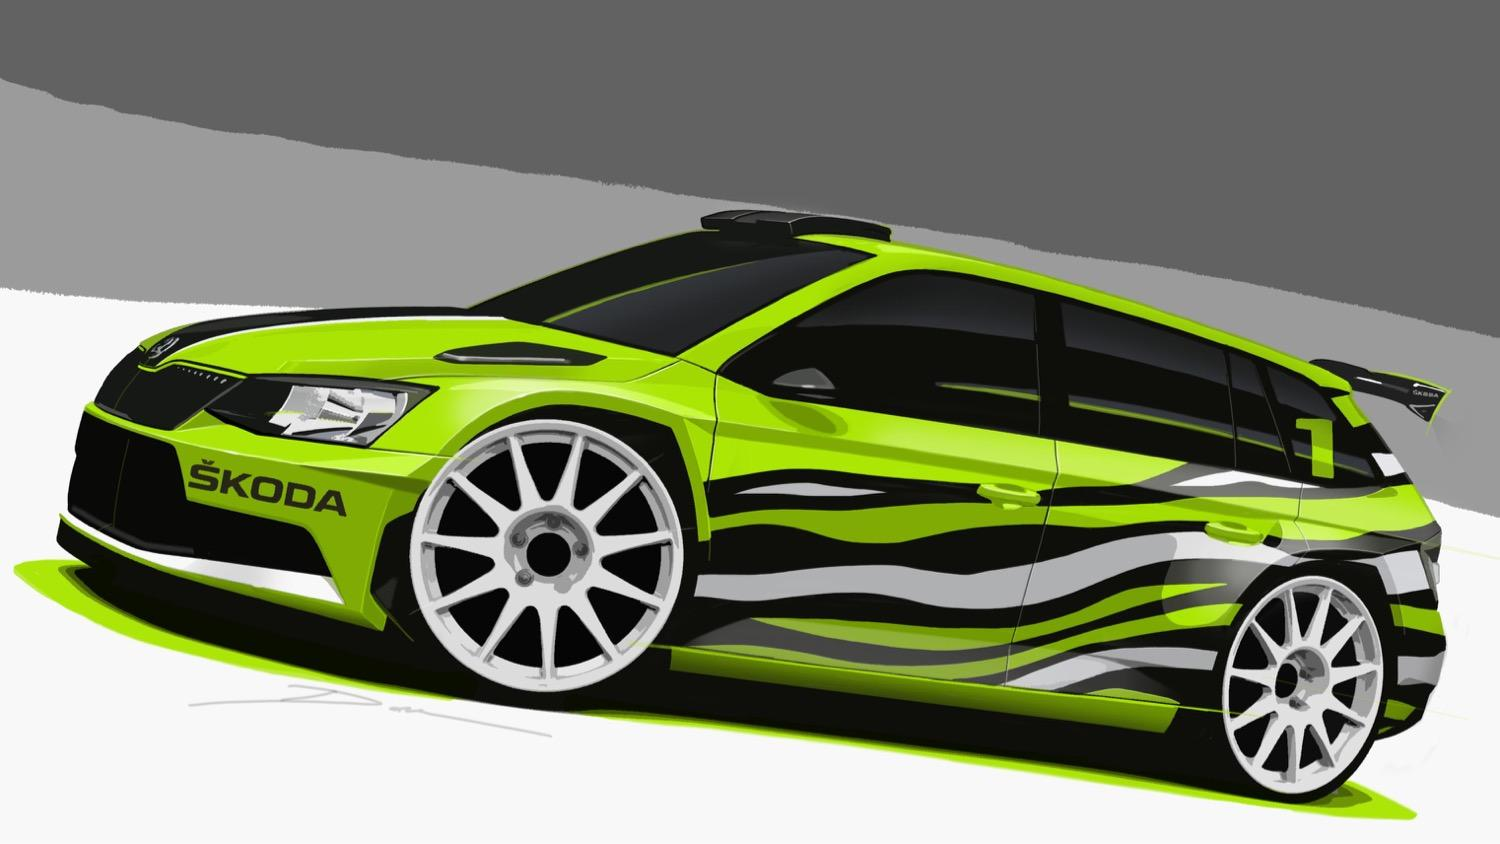 skoda s fabia combi r5 concept hulks out with rally car. Black Bedroom Furniture Sets. Home Design Ideas